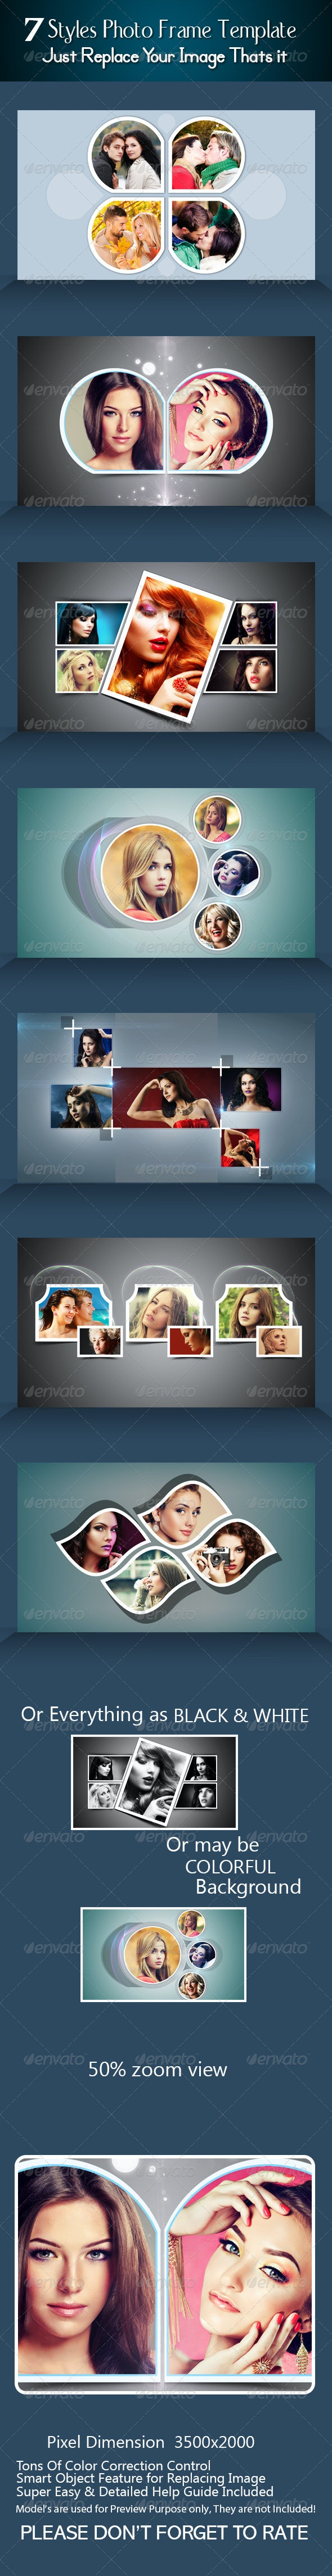 7 Styles Photo Frame Template - Photo Templates Graphics